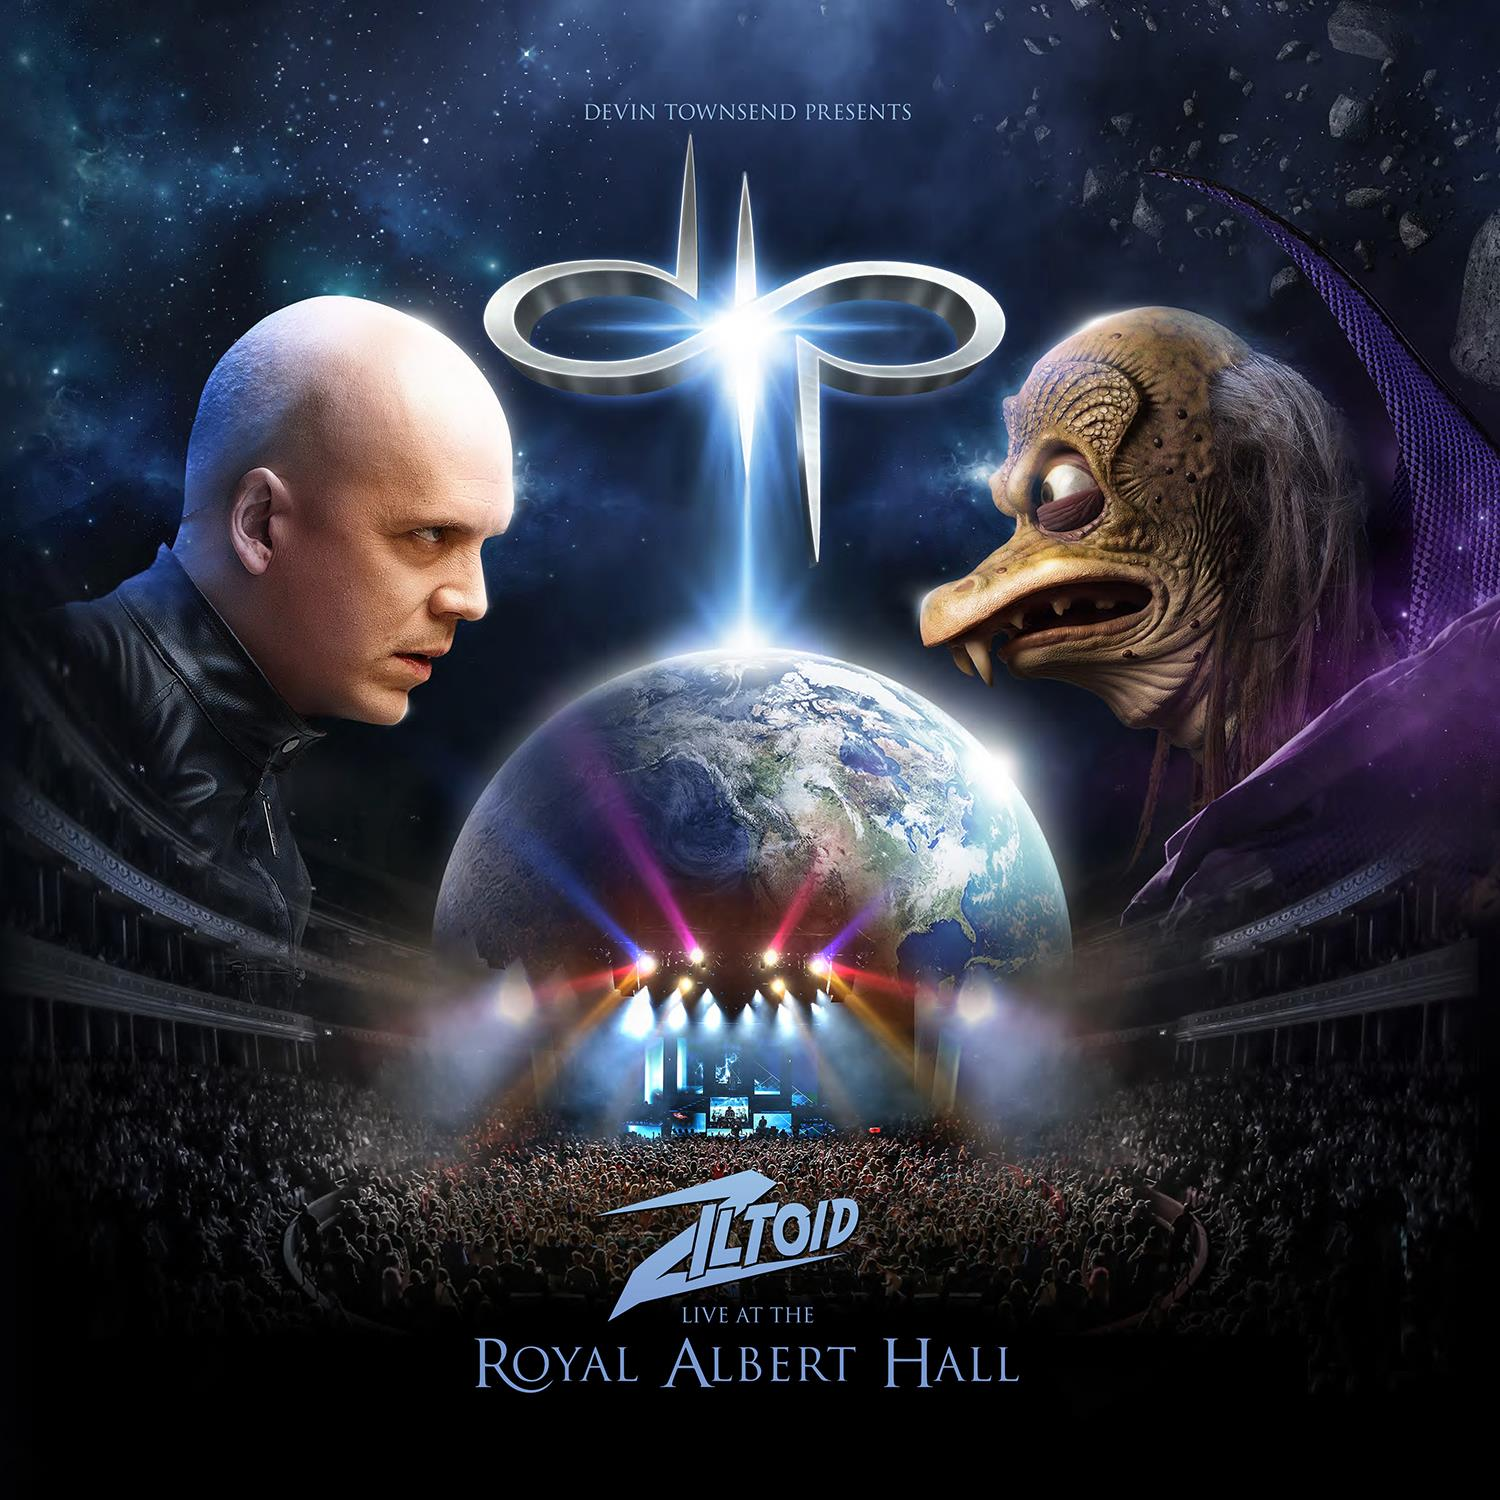 Devin Townsend Project - Ziltoid Live At The Royal Albert Hall [w/DVD]